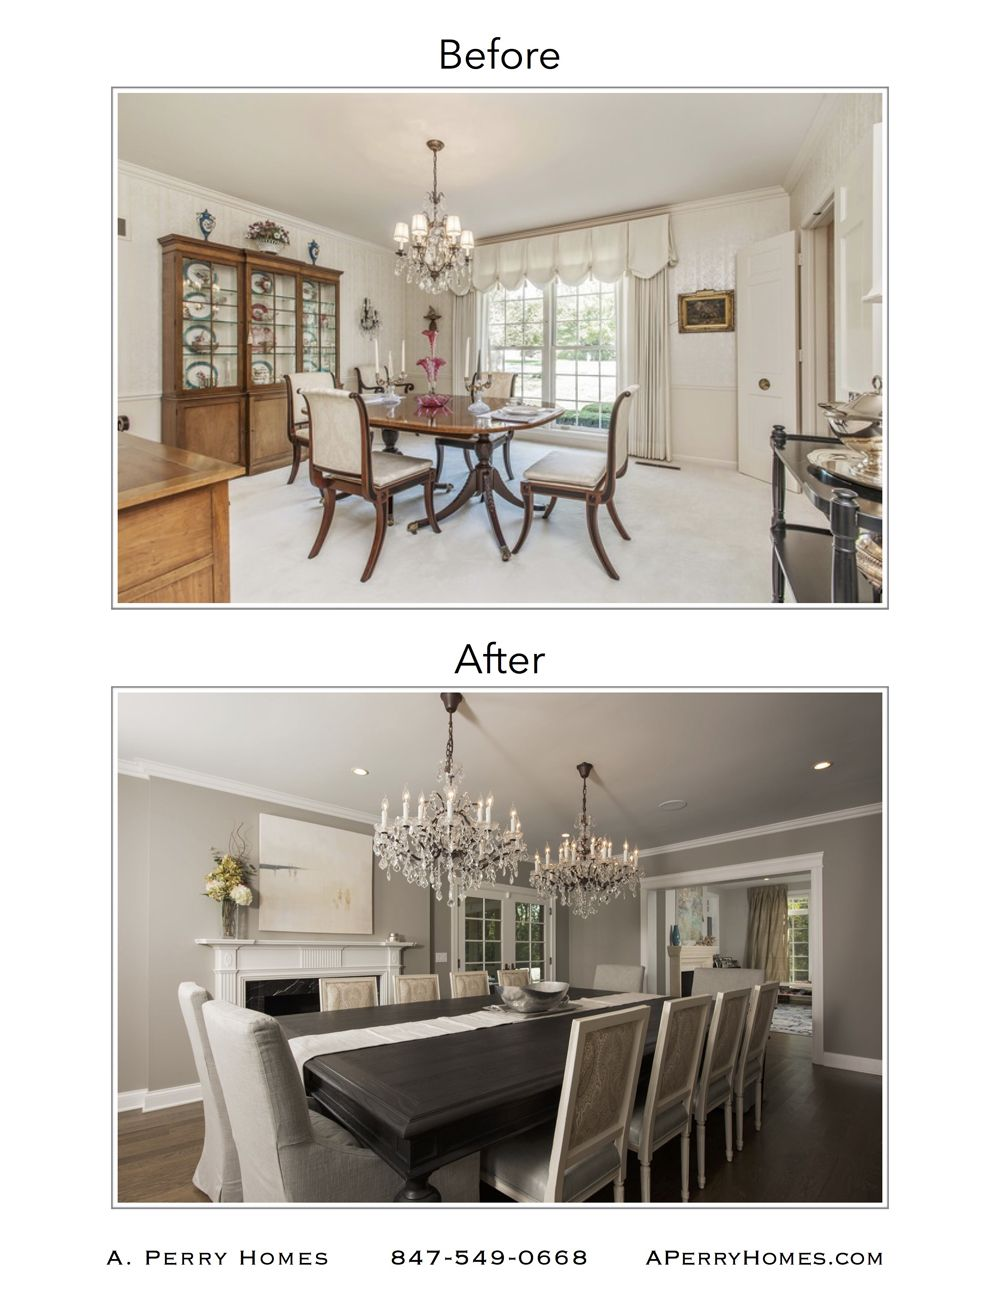 Remodeling – A. Perry Homes